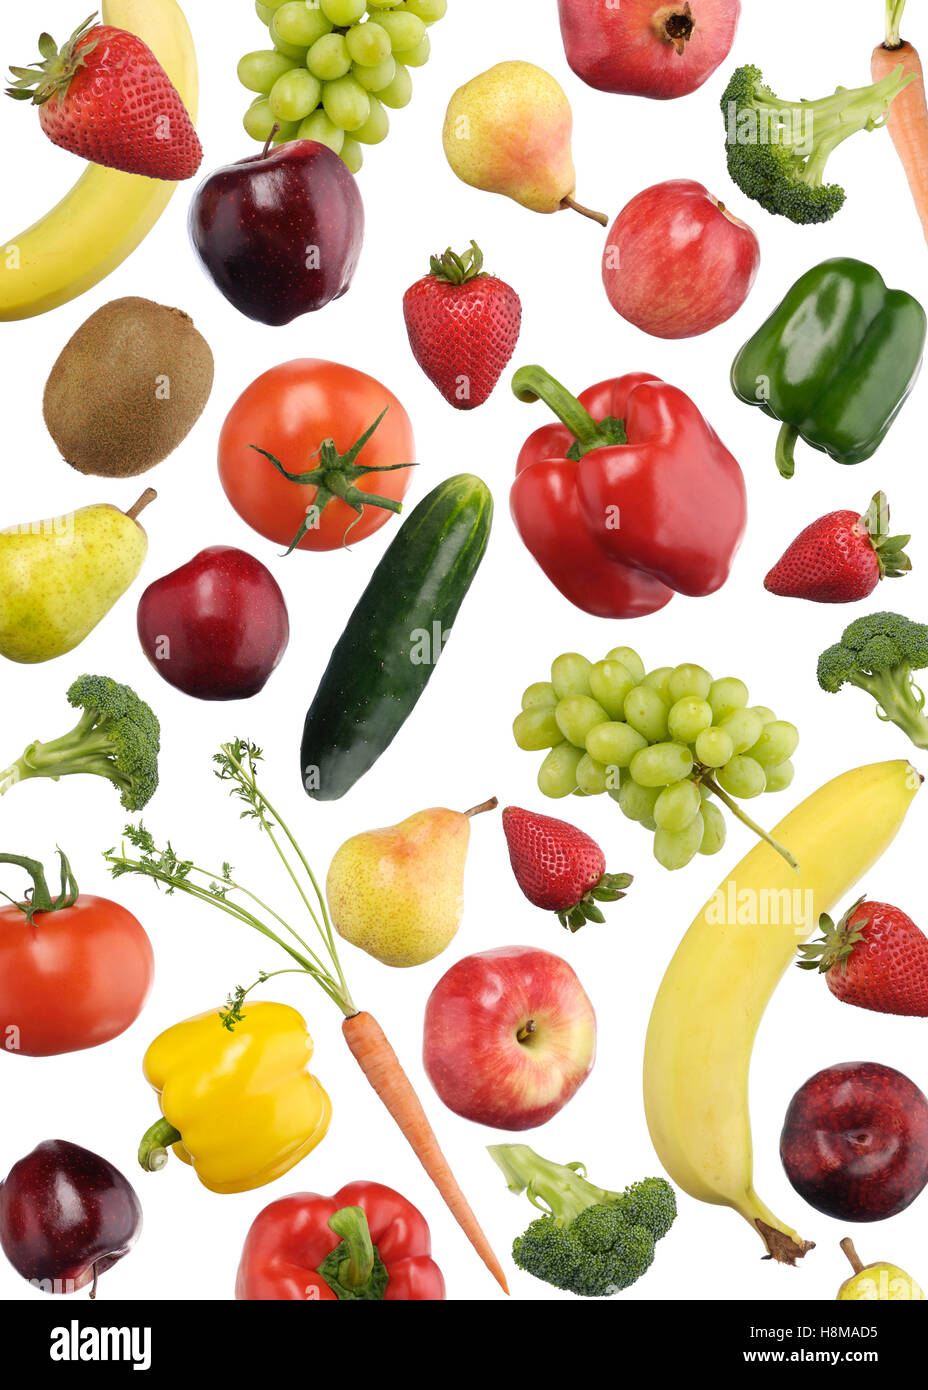 Colorful pattern of fruits and vegetables - Stock Image